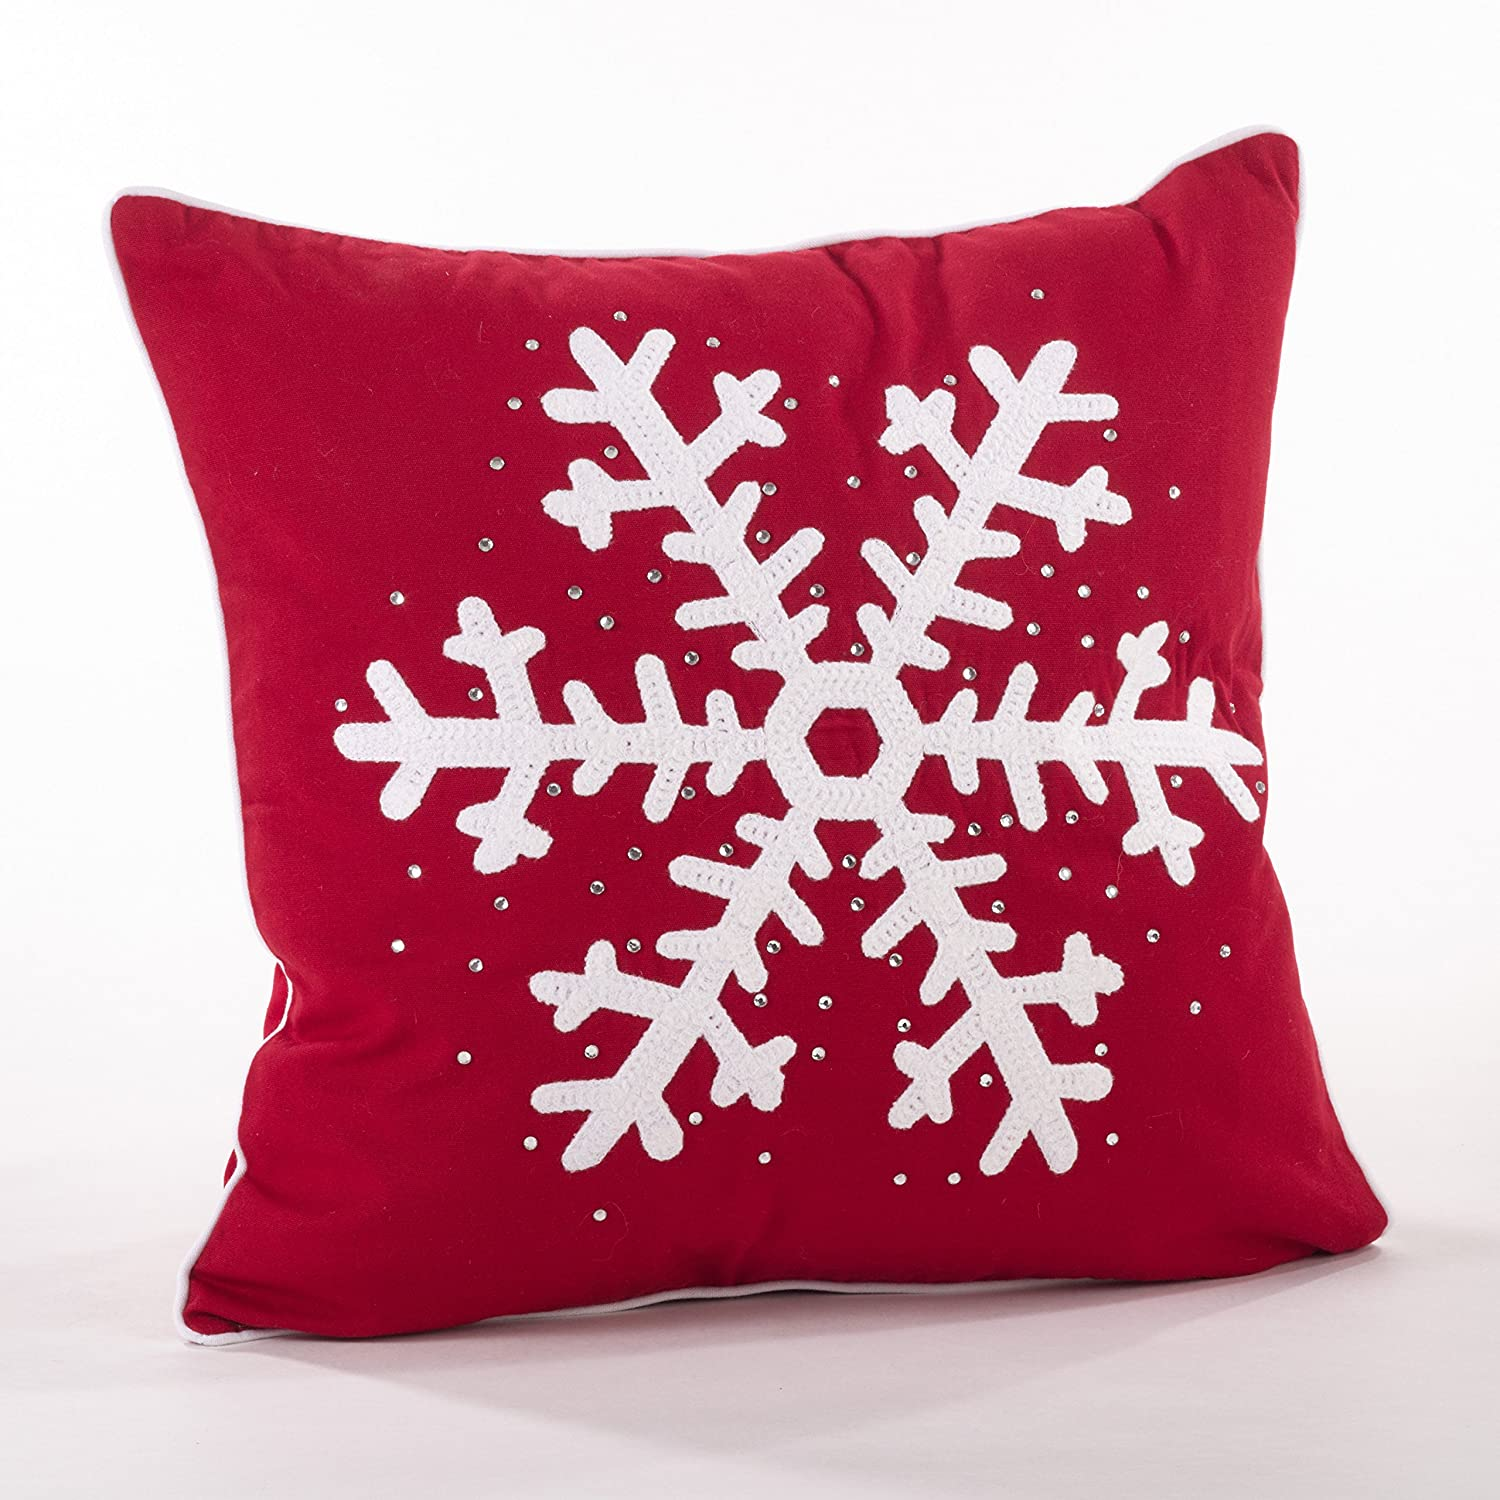 Fennco Styles Home Décor Happy Holiday Decorative Studded Snowflake Throw Pillow (Single Snowflake)